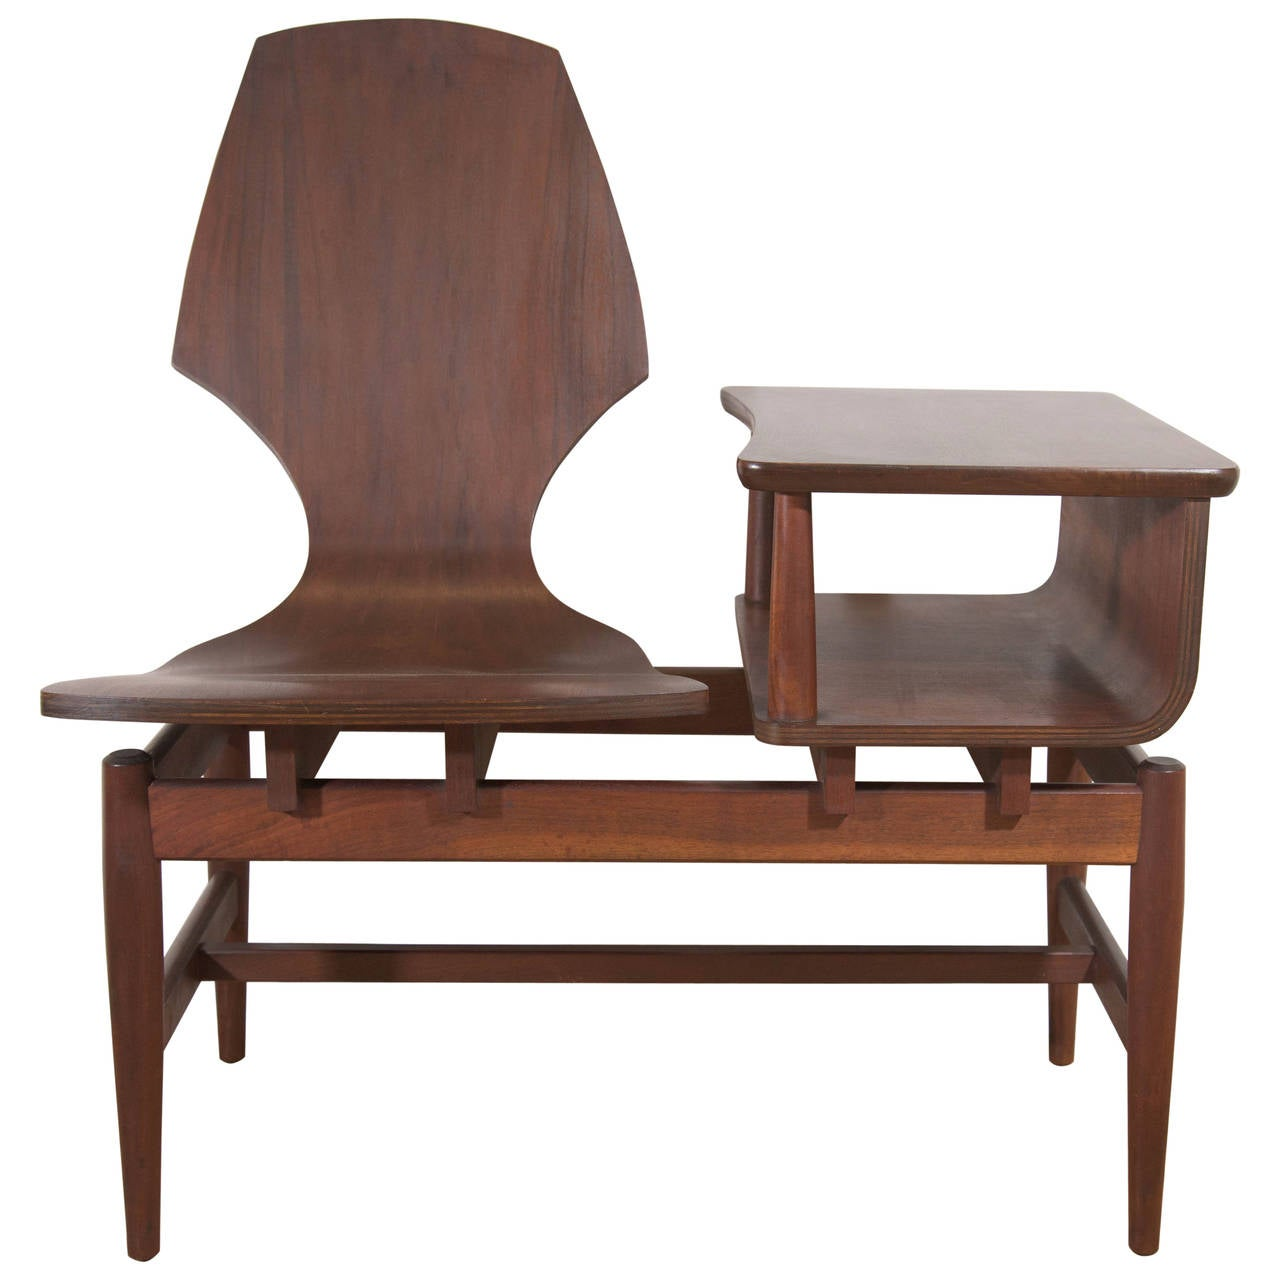 Midcentury scandinavian rosewood telephone table and side chair at 1stdibs - Scandinavian chair ...